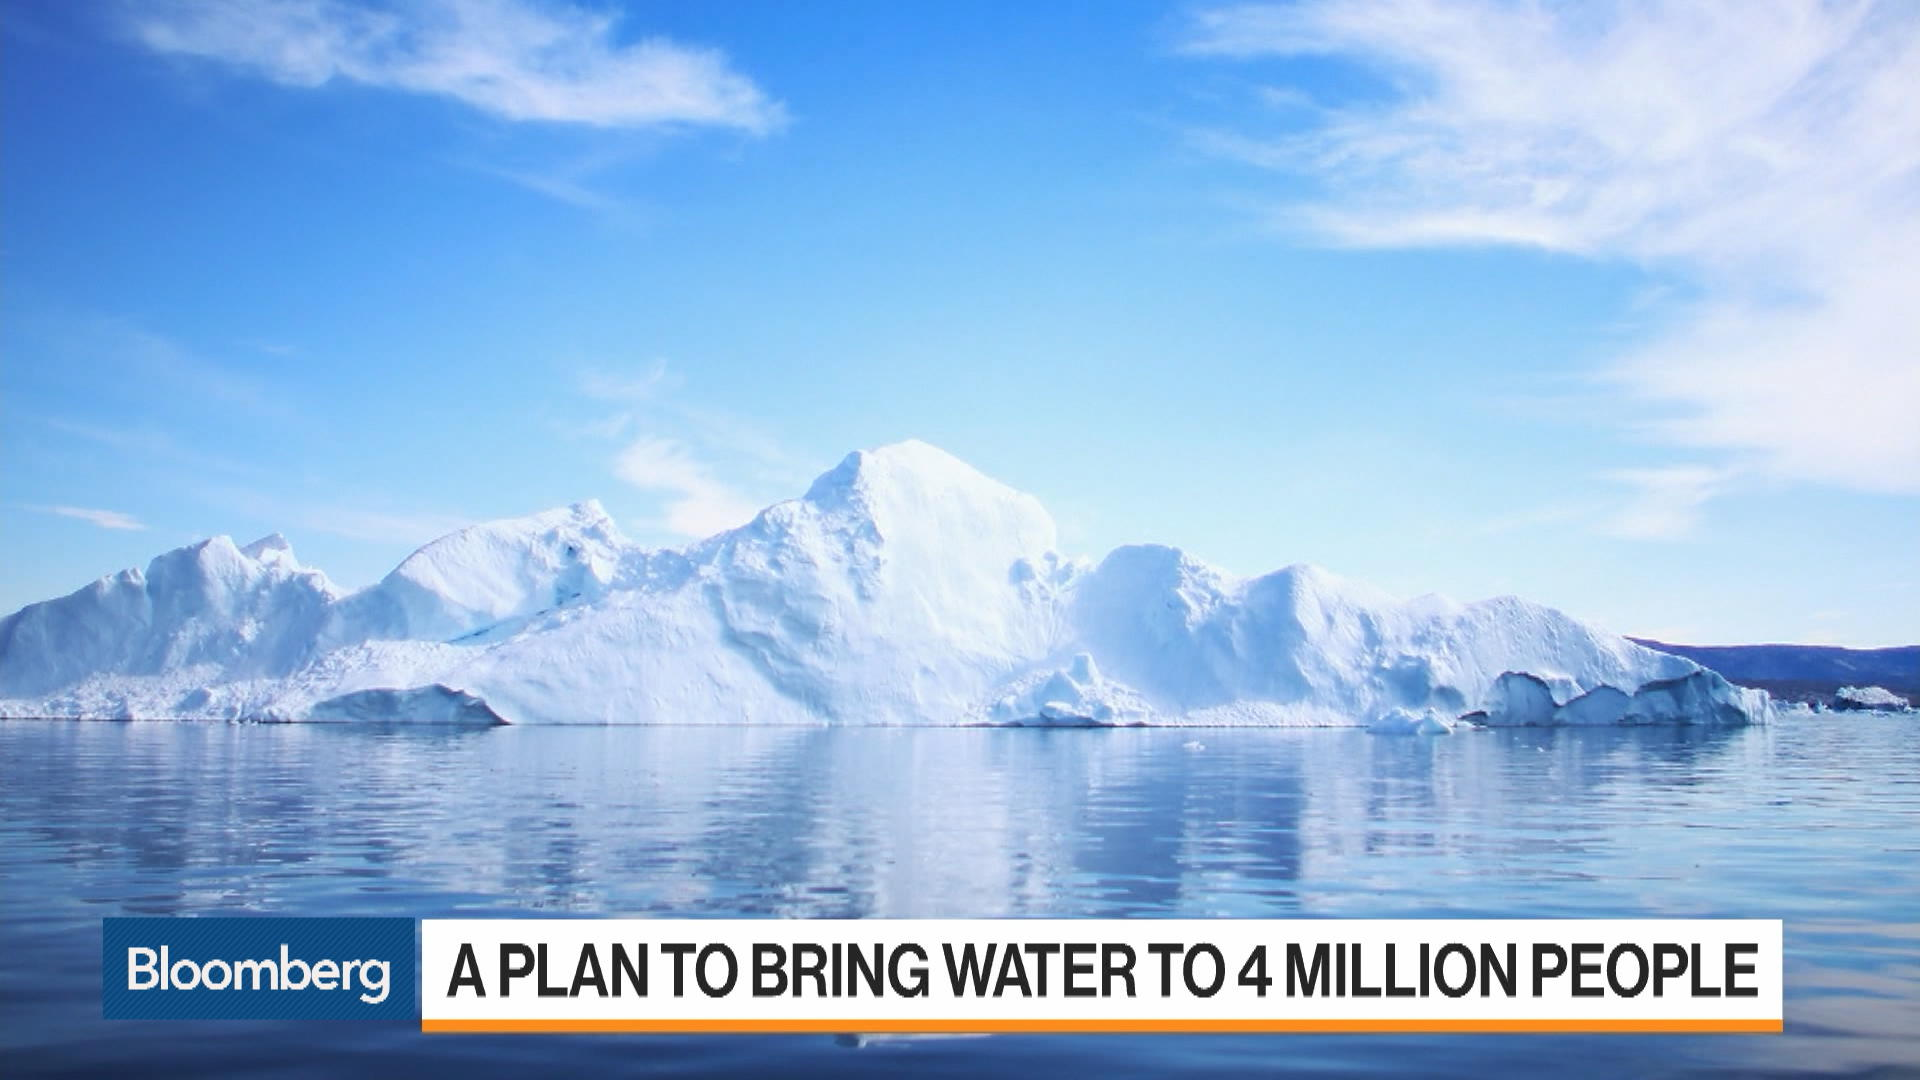 One Man's Plan to Bring Drinking Water to Millions by Towing an